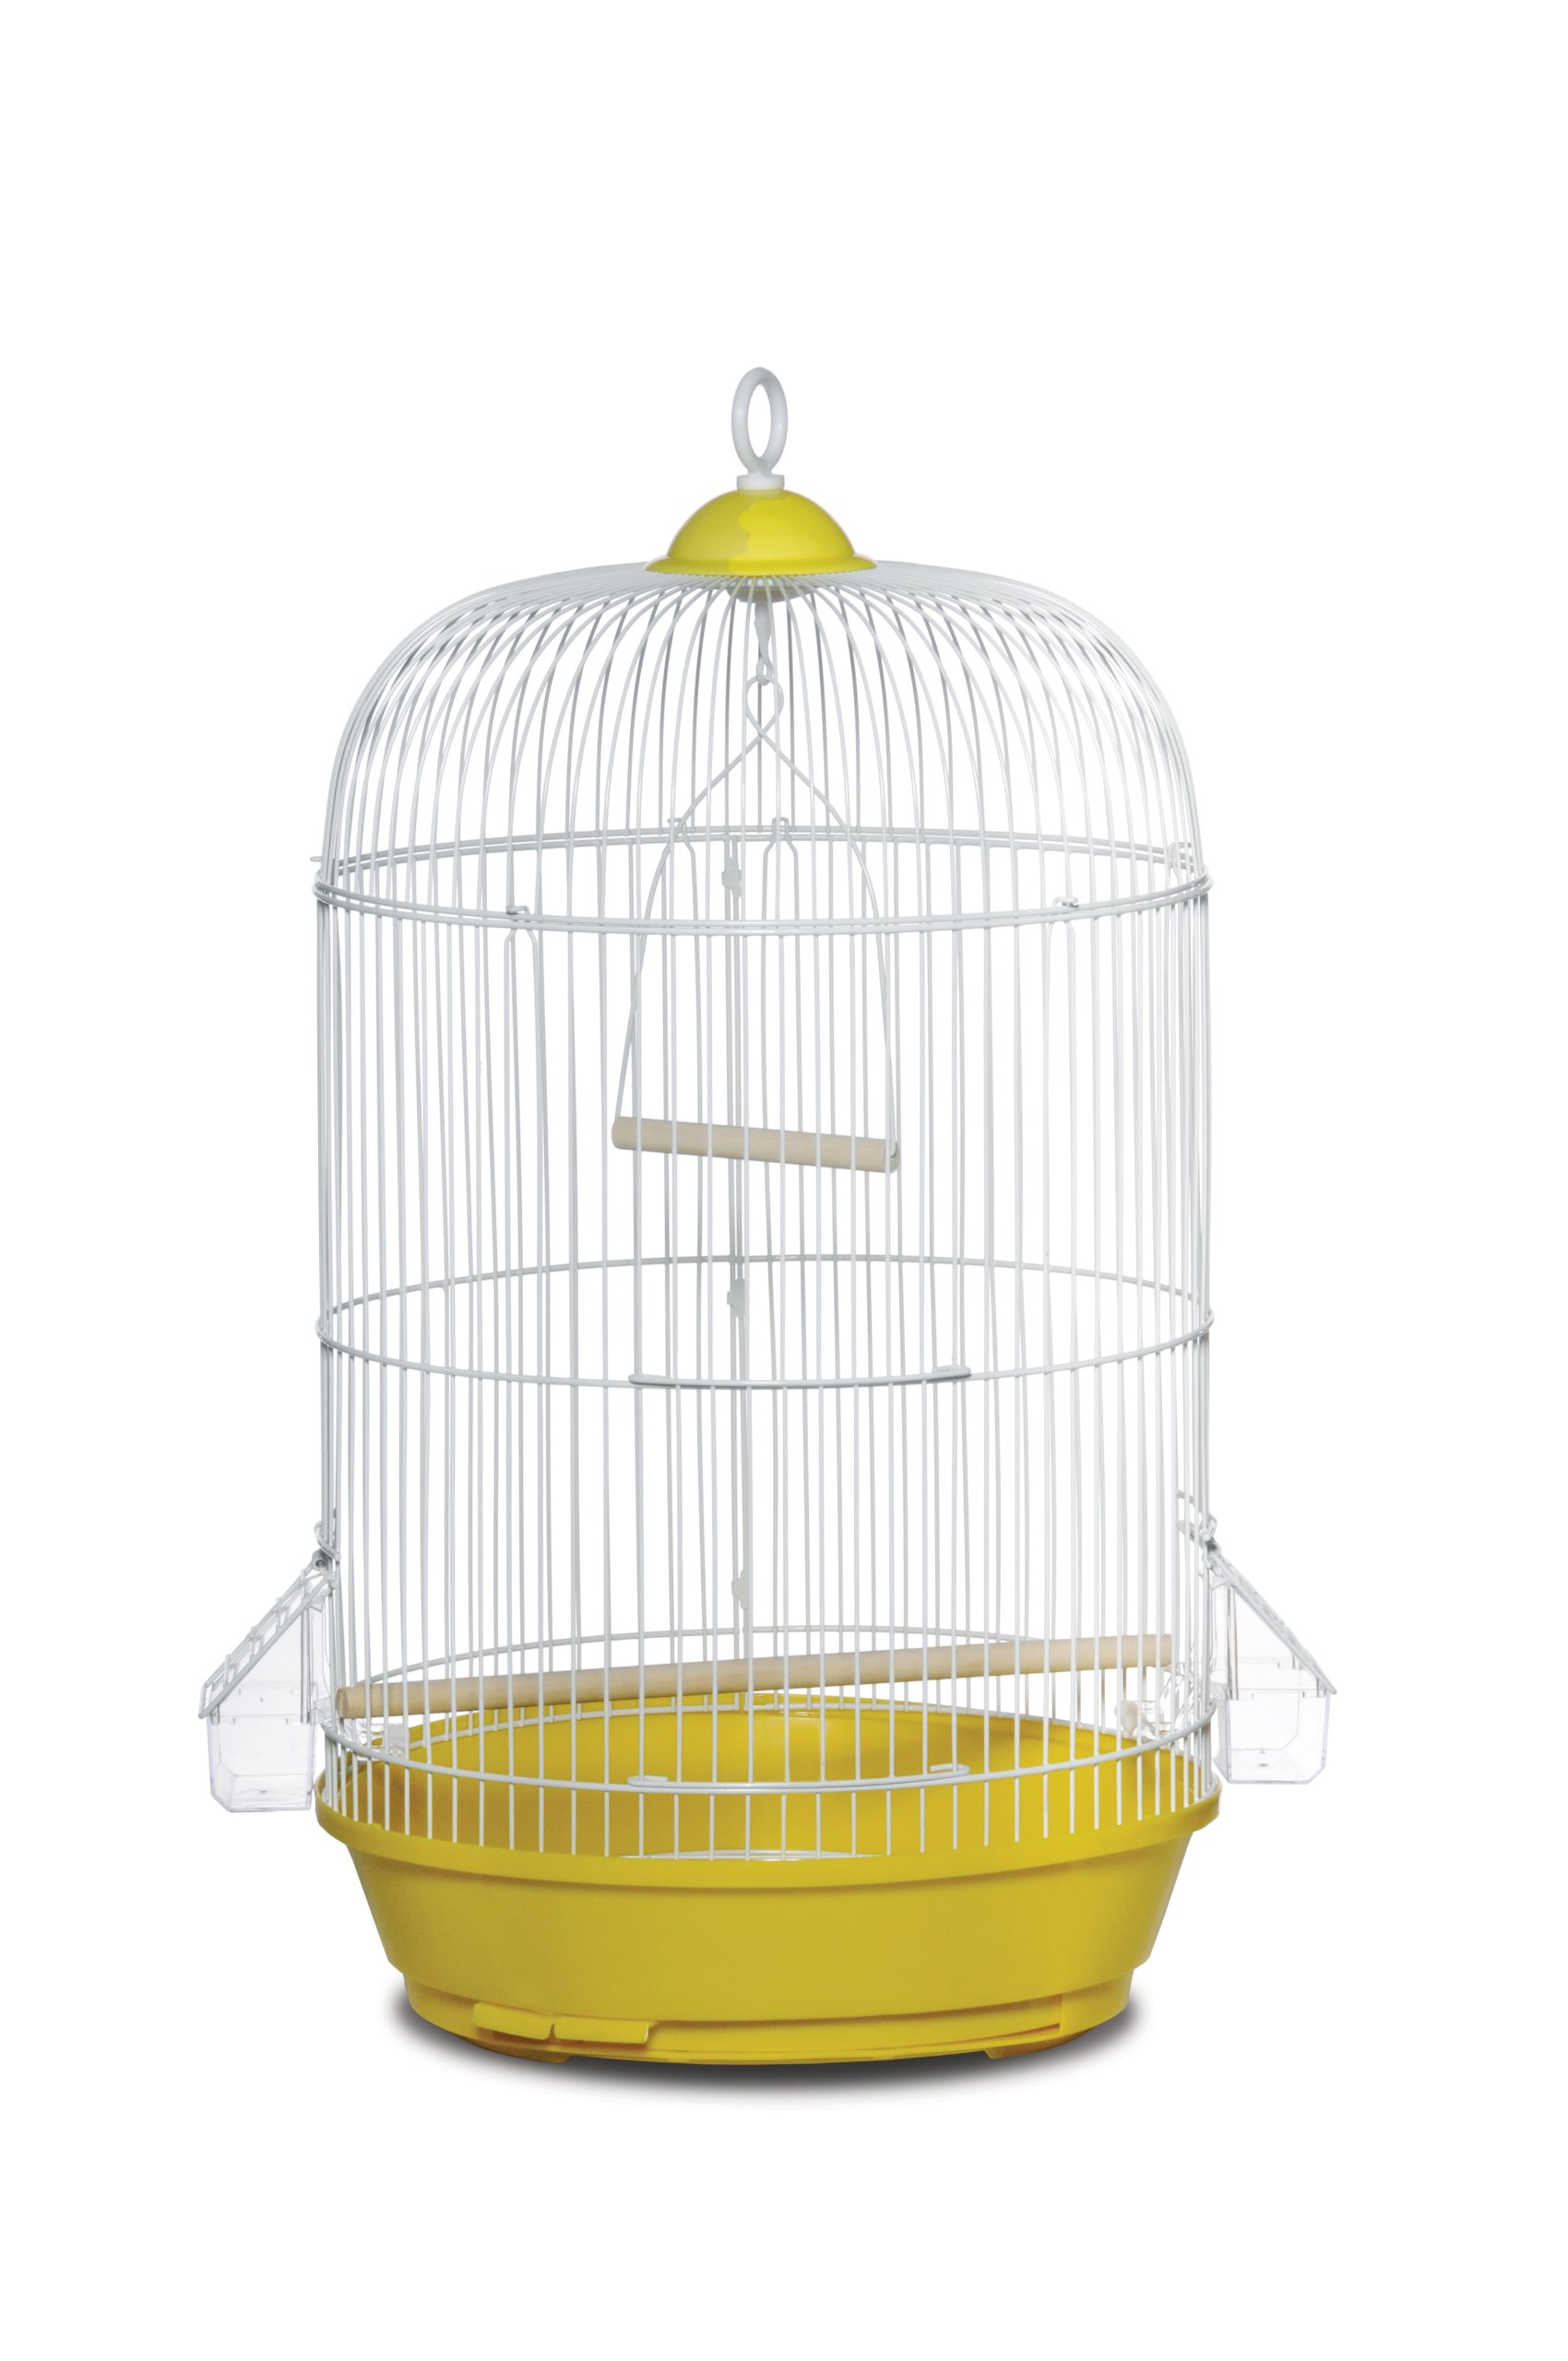 Prevue Hendryx SP31999Y Classic Round Bird Cage, Yellow by Prevue Hendryx